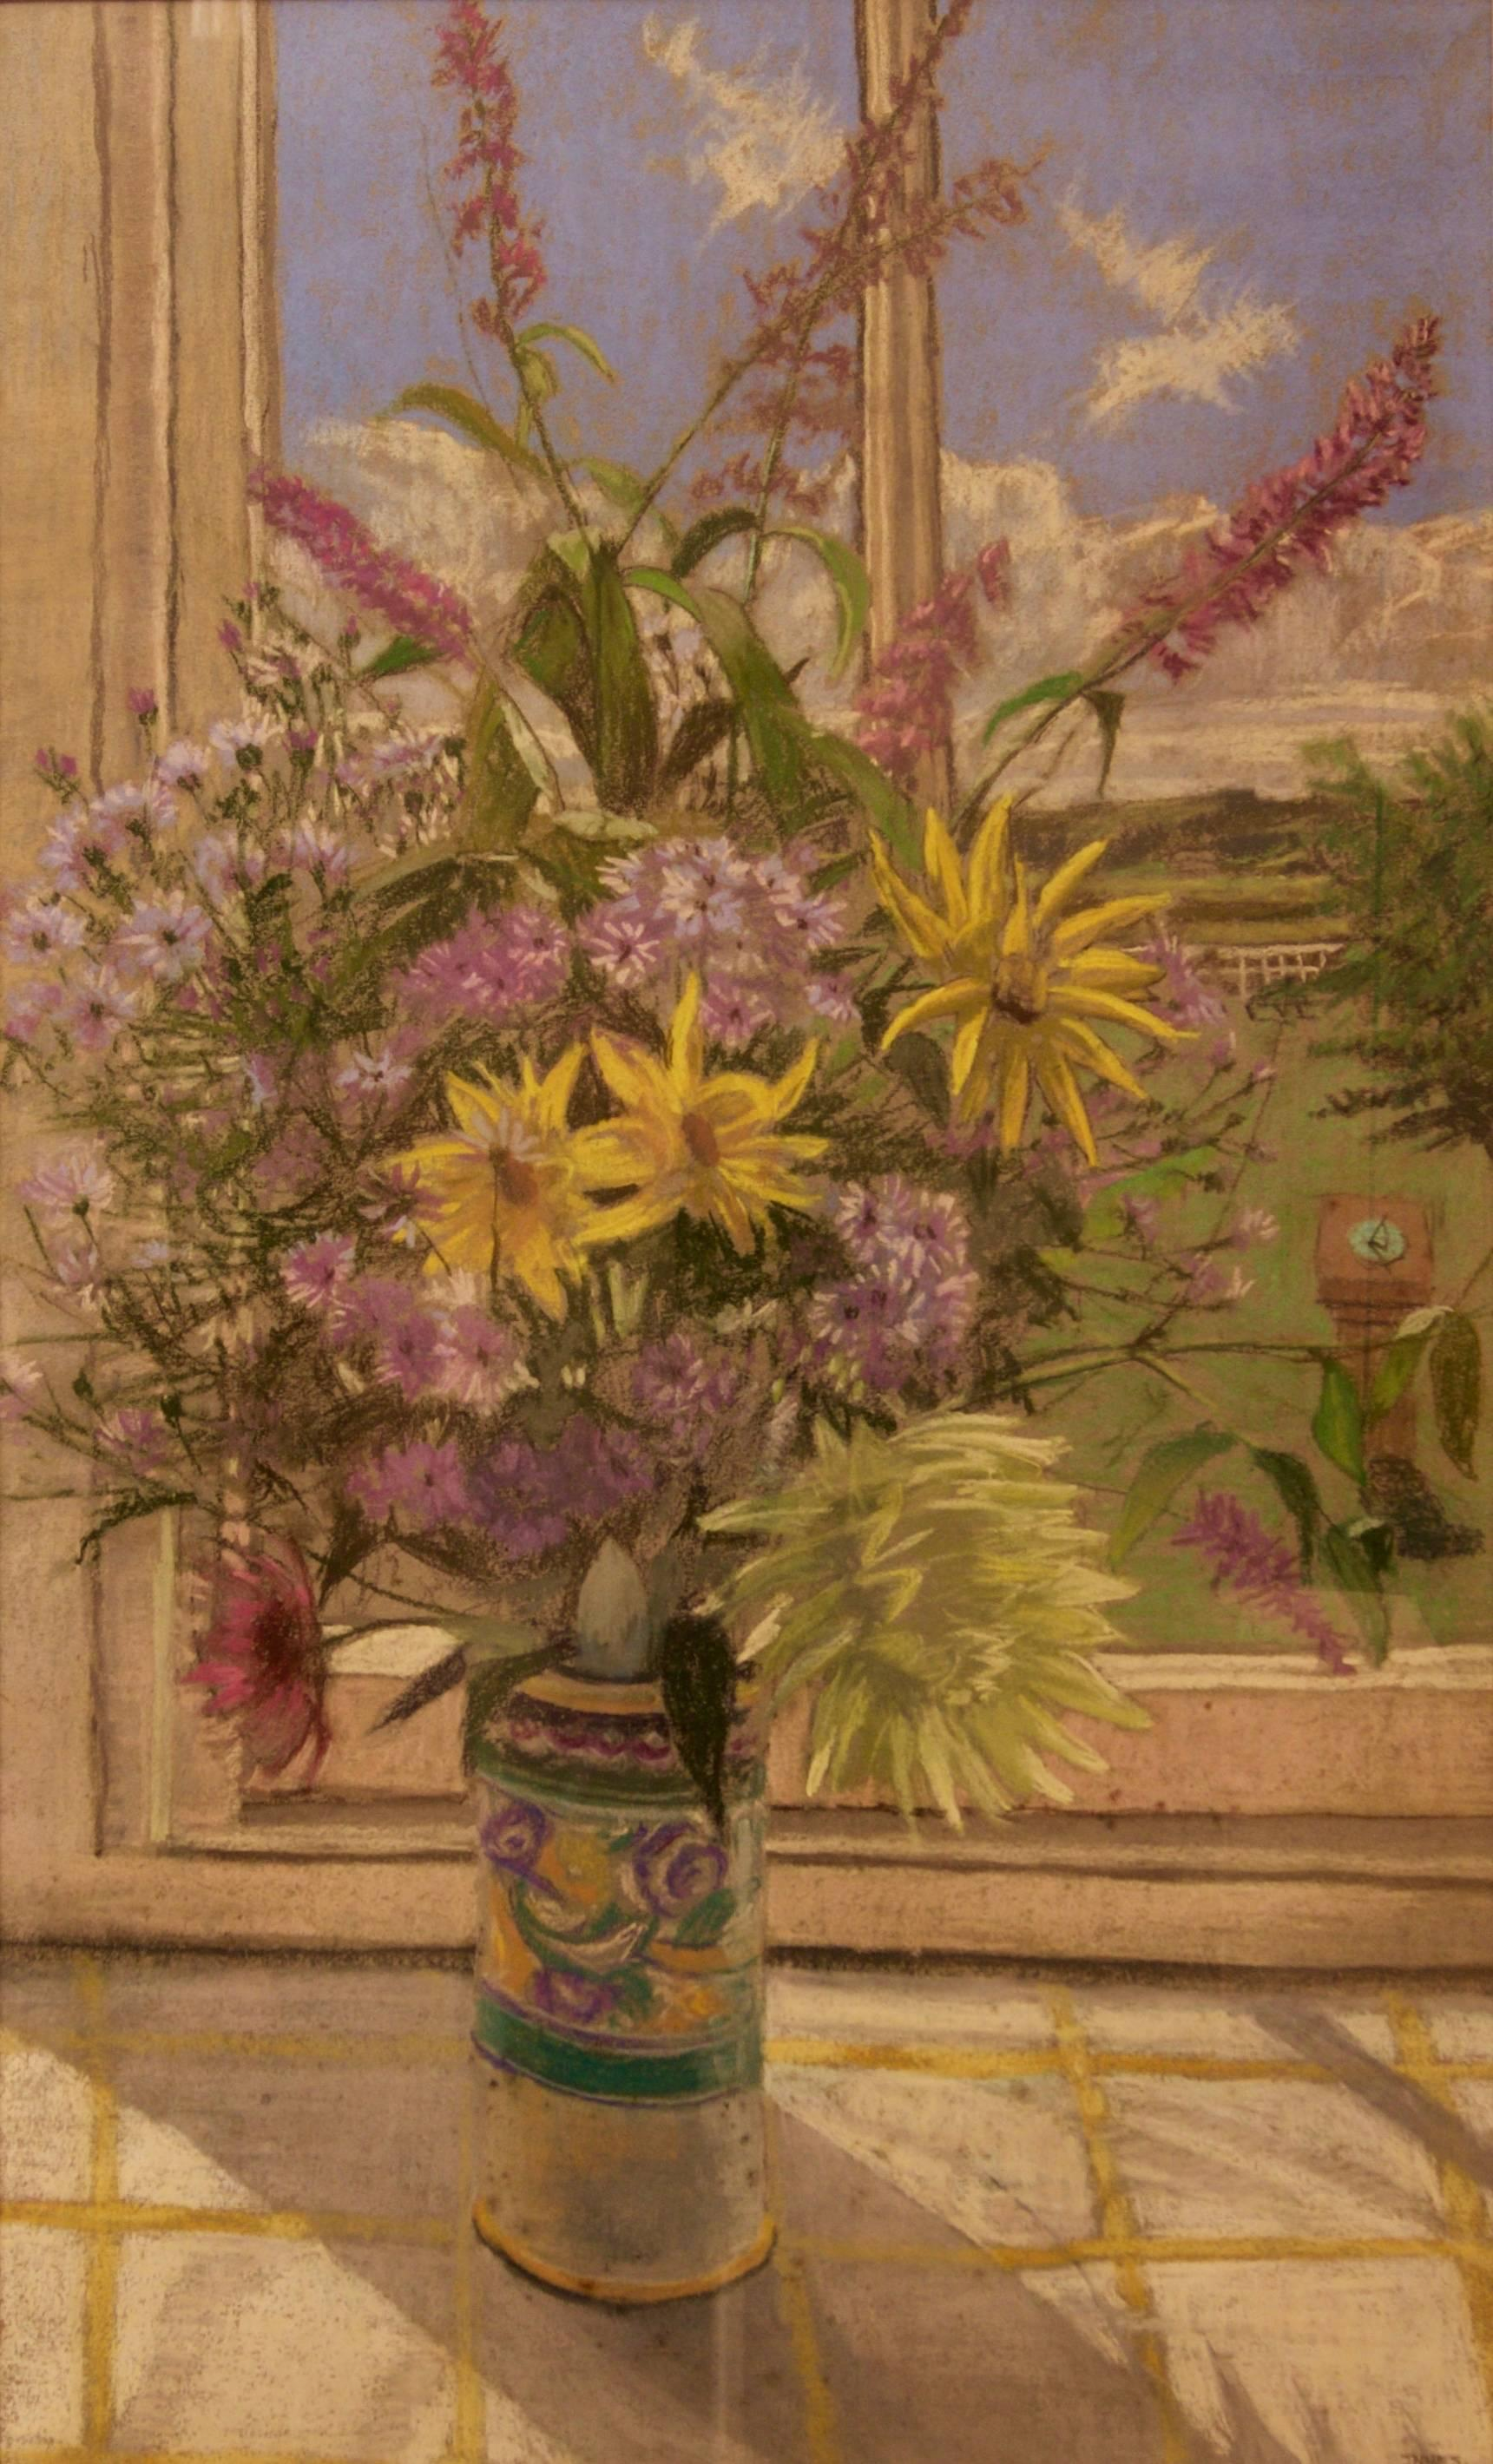 Flowers By My Window - 20th Century Still Life Pastel by William Henry Innes